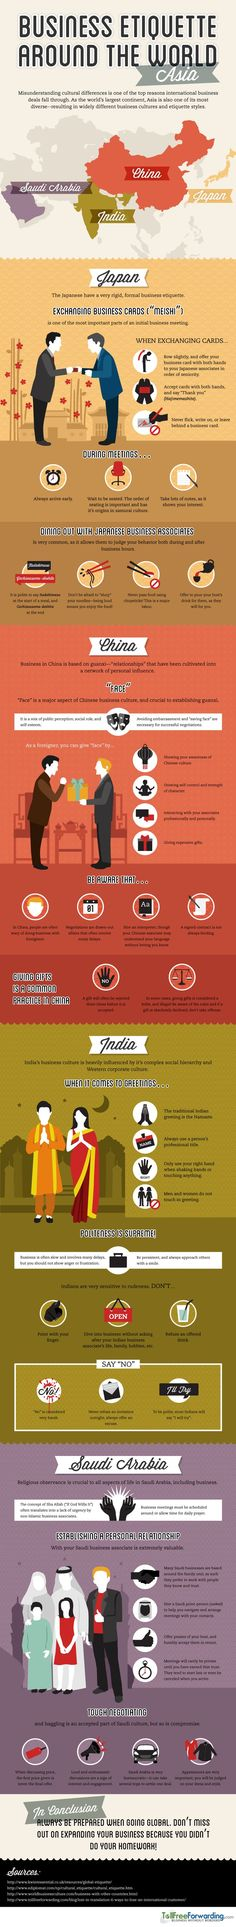 Business Etiquette Around the World (Asia) #infographic